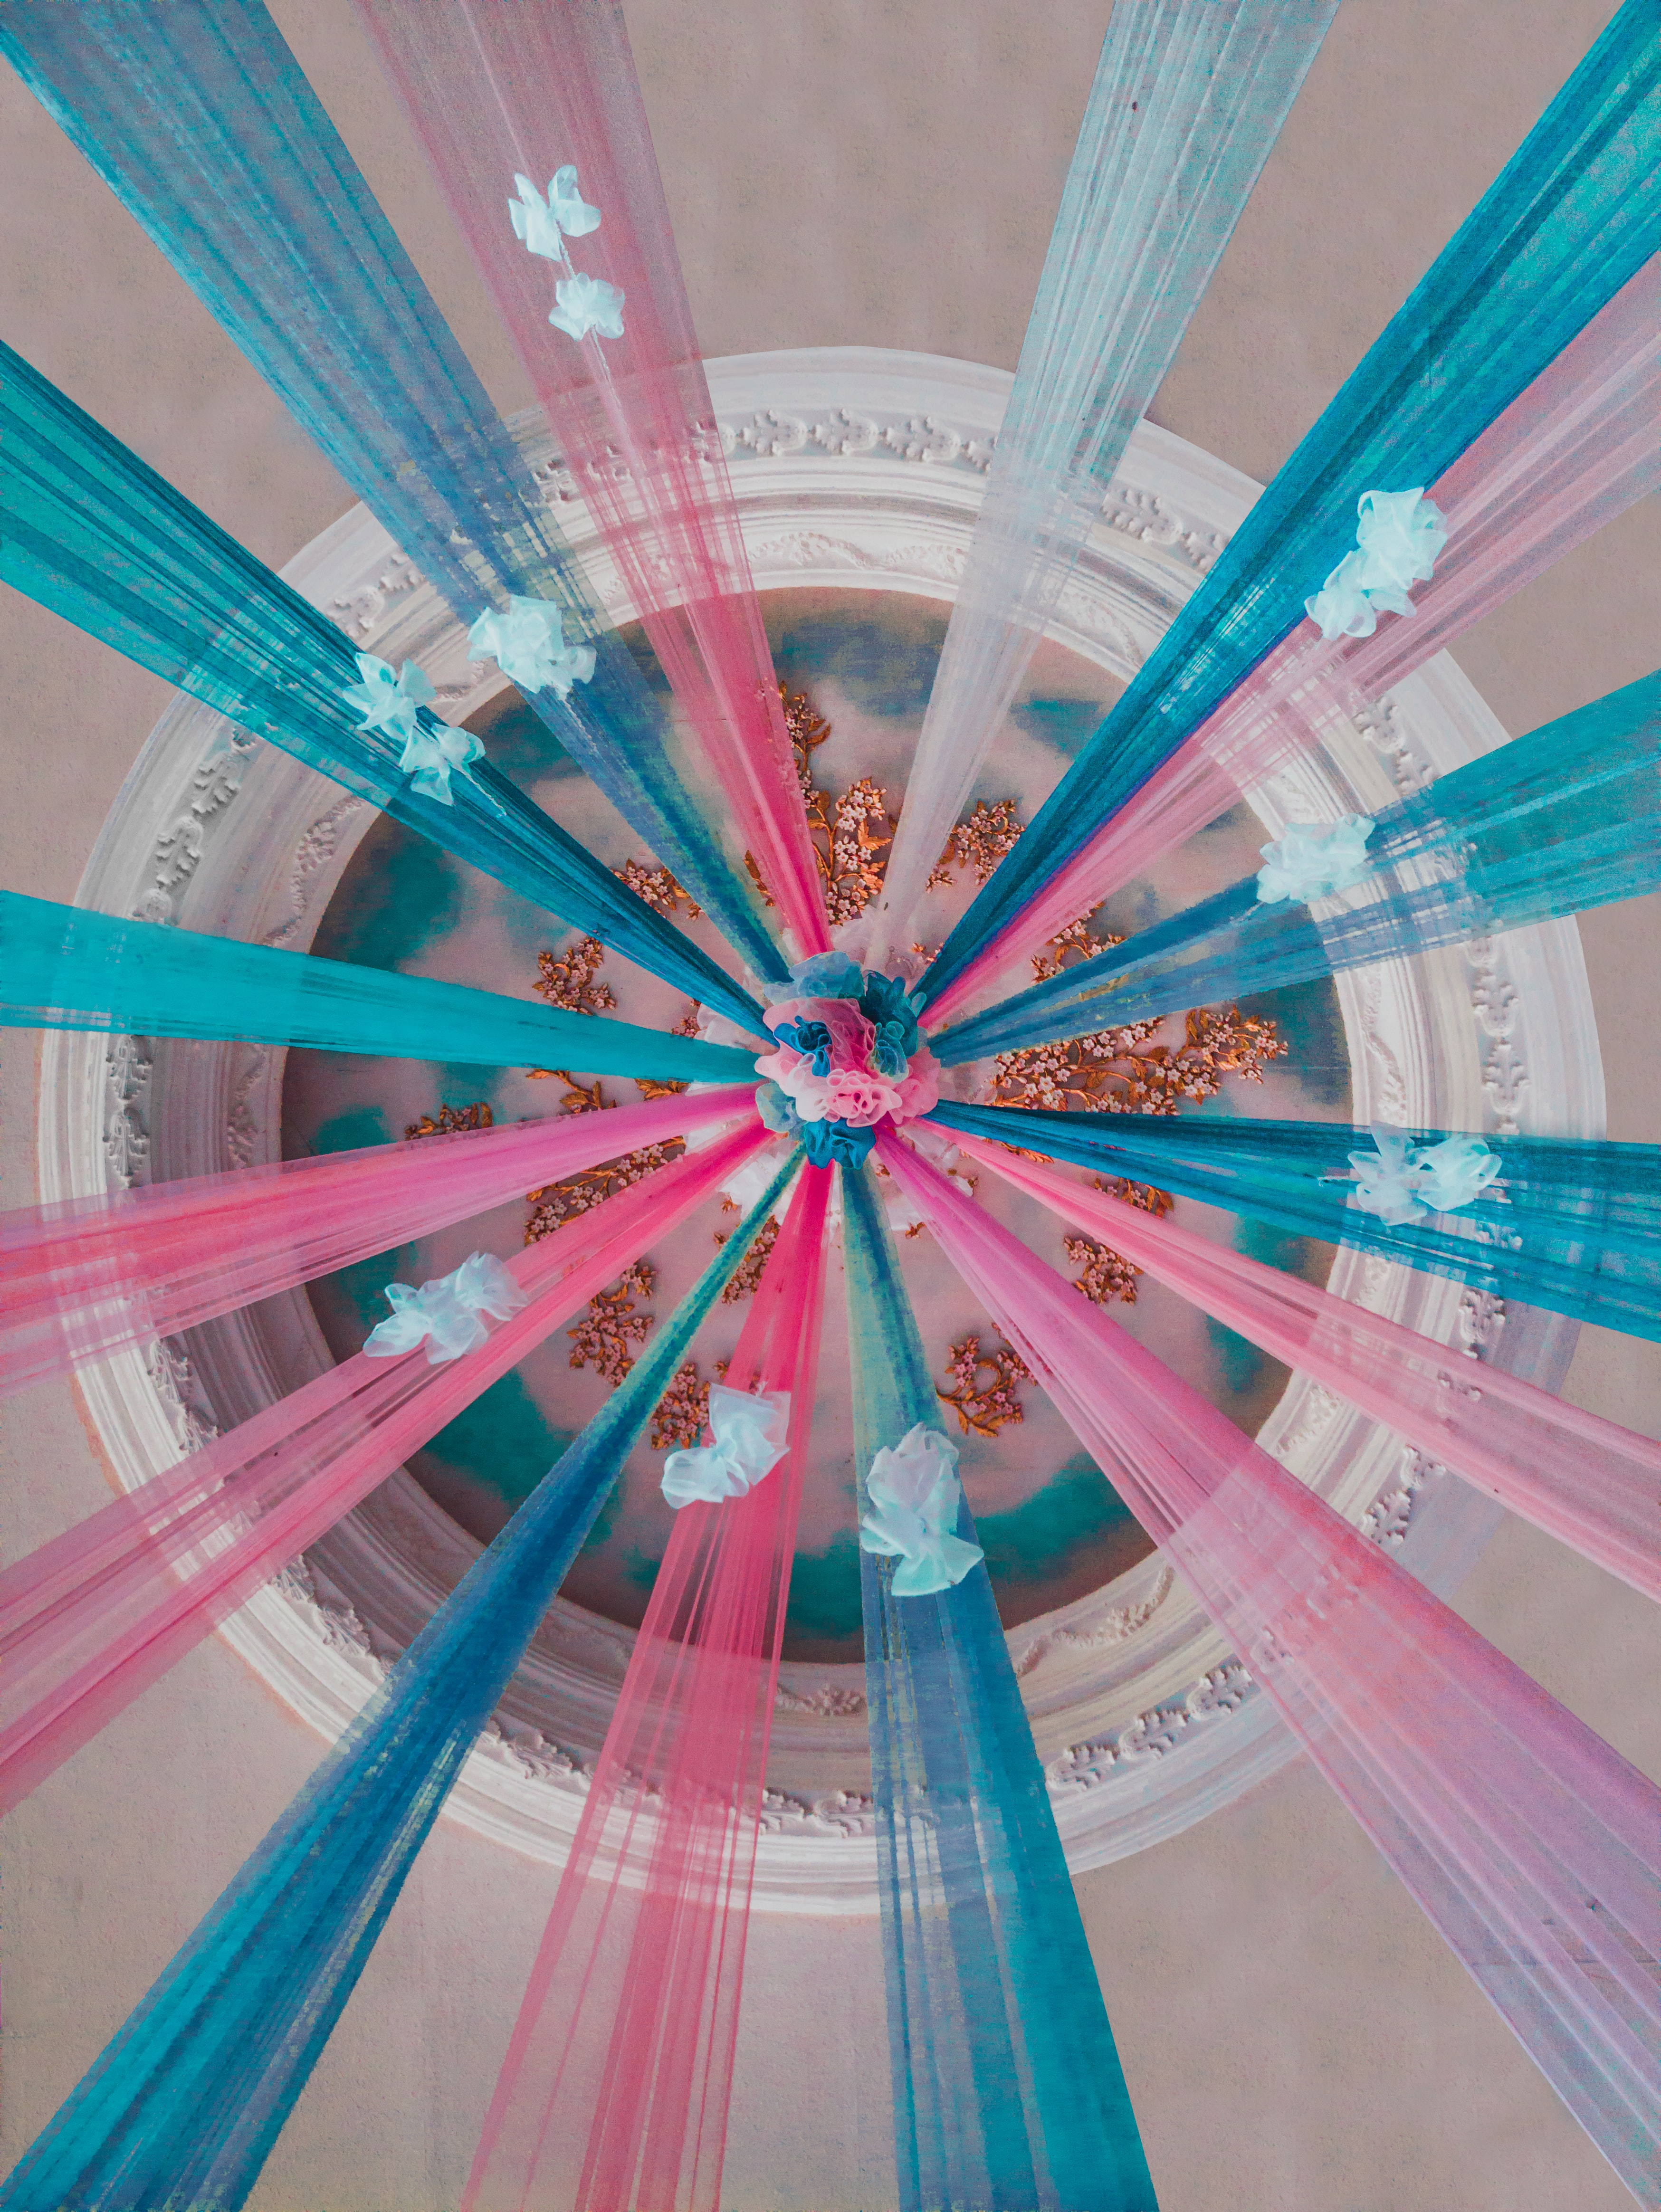 low angle photograph of multicolored ceiling decor